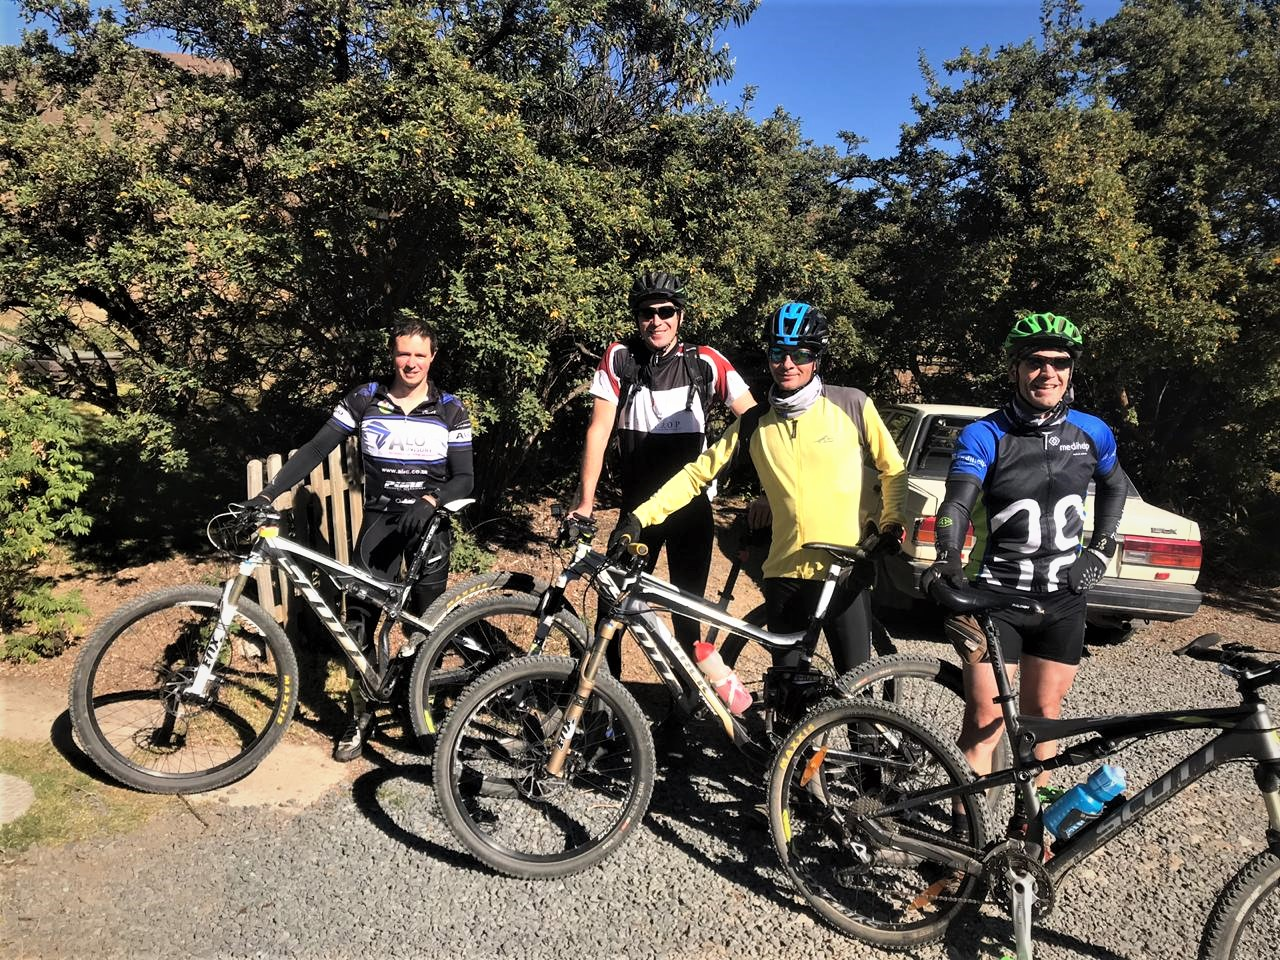 Guided Johannesburg mountain biking experience in South Africa